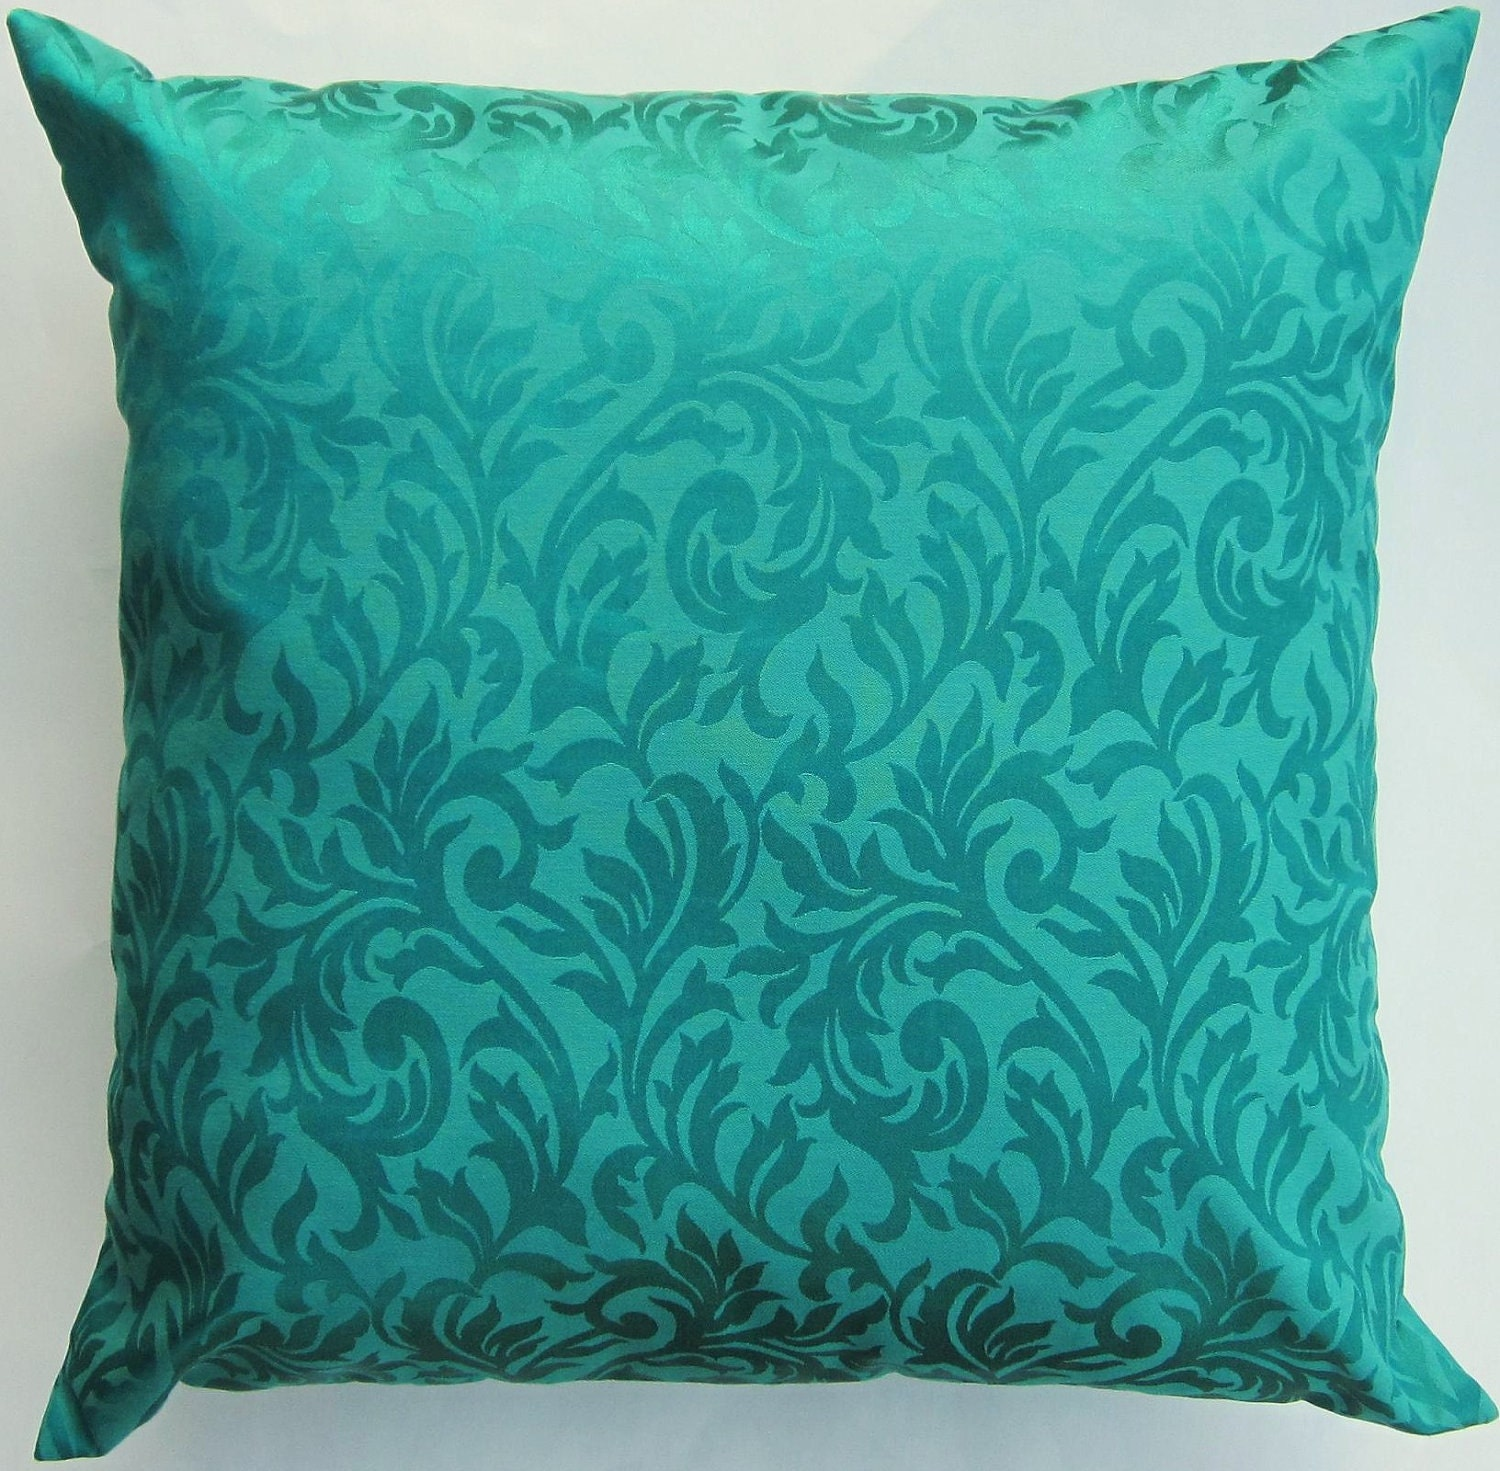 Throw Pillow Covers Teal : Teal Green Throw Pillow Cover Teal on Teal Cushion Cover